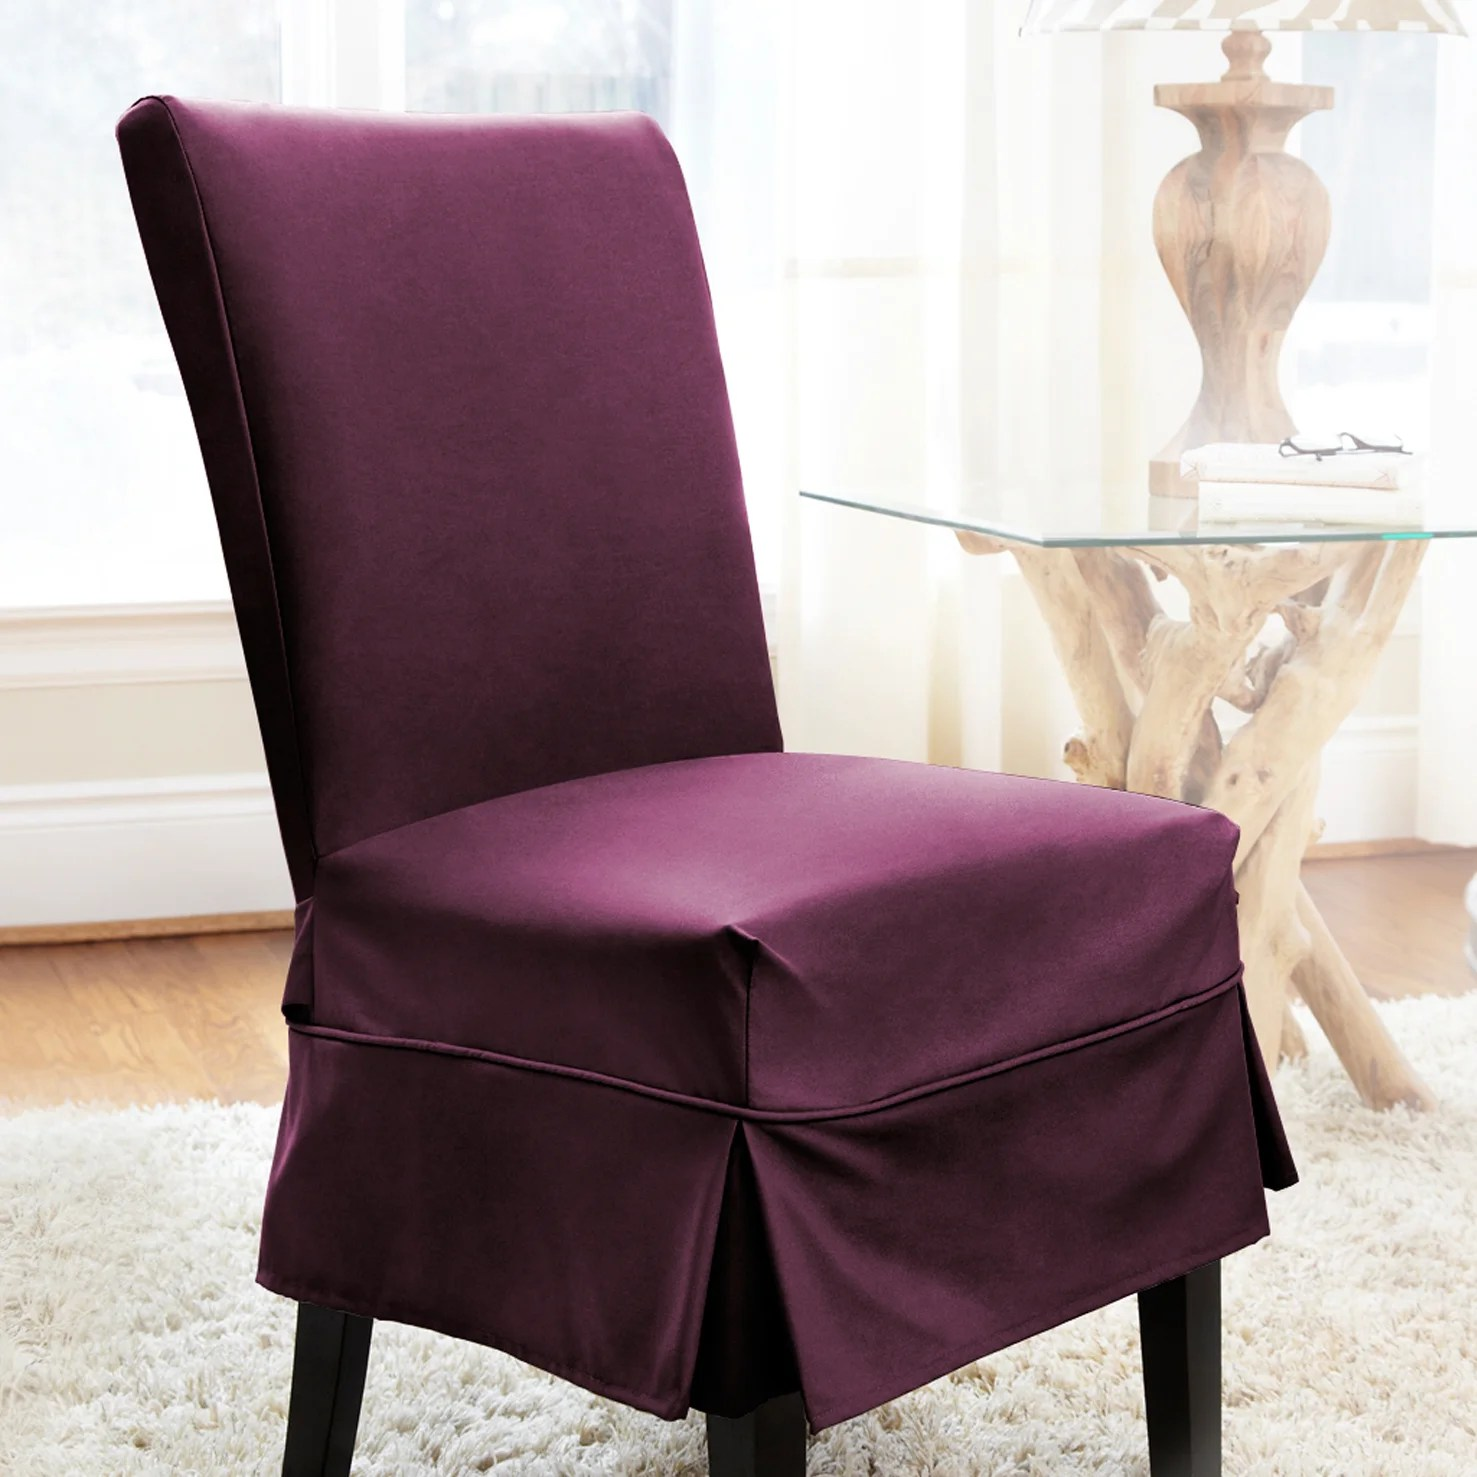 parsons chair covers canada dining in pakistan darby home co parson skirted slipcover with piping